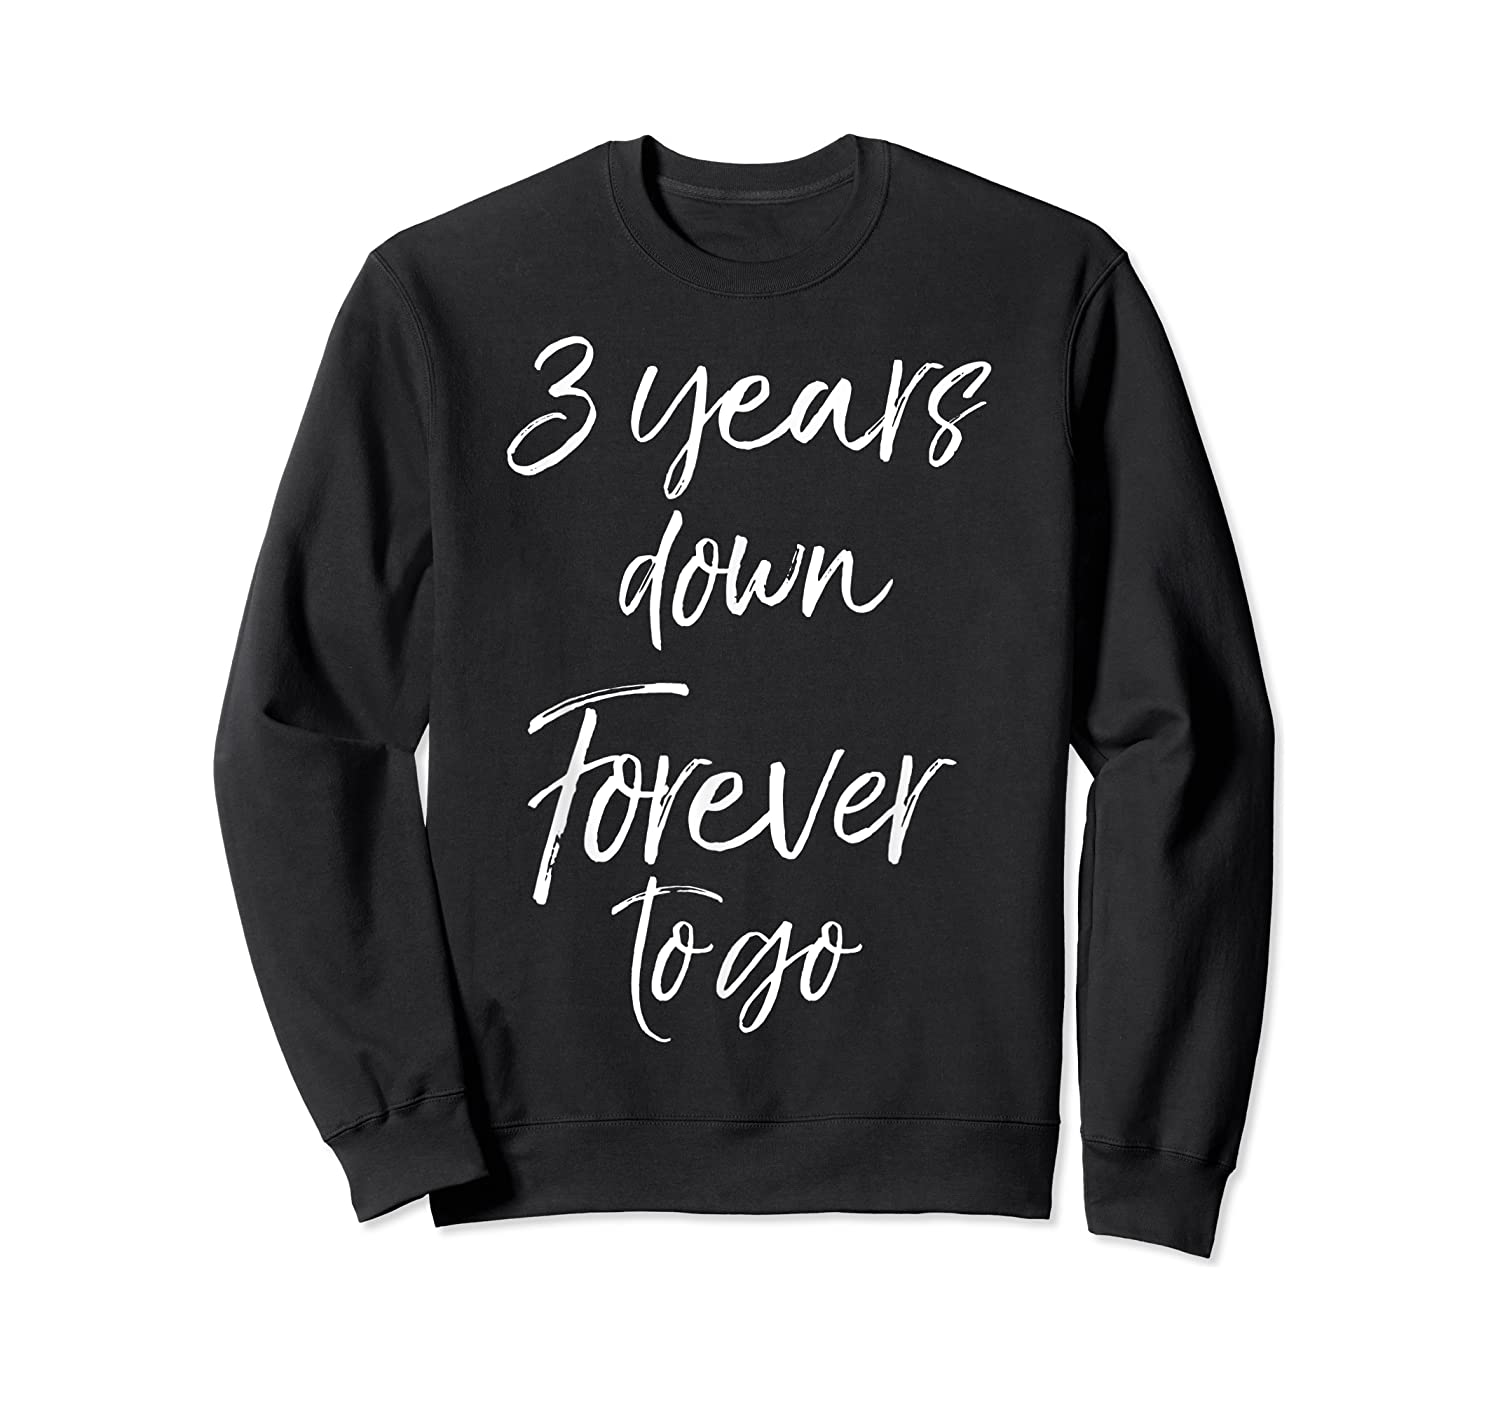 3rd Anniversary Gifts For Couples 3 Years Down Forever To Go Shirts Crewneck Sweater